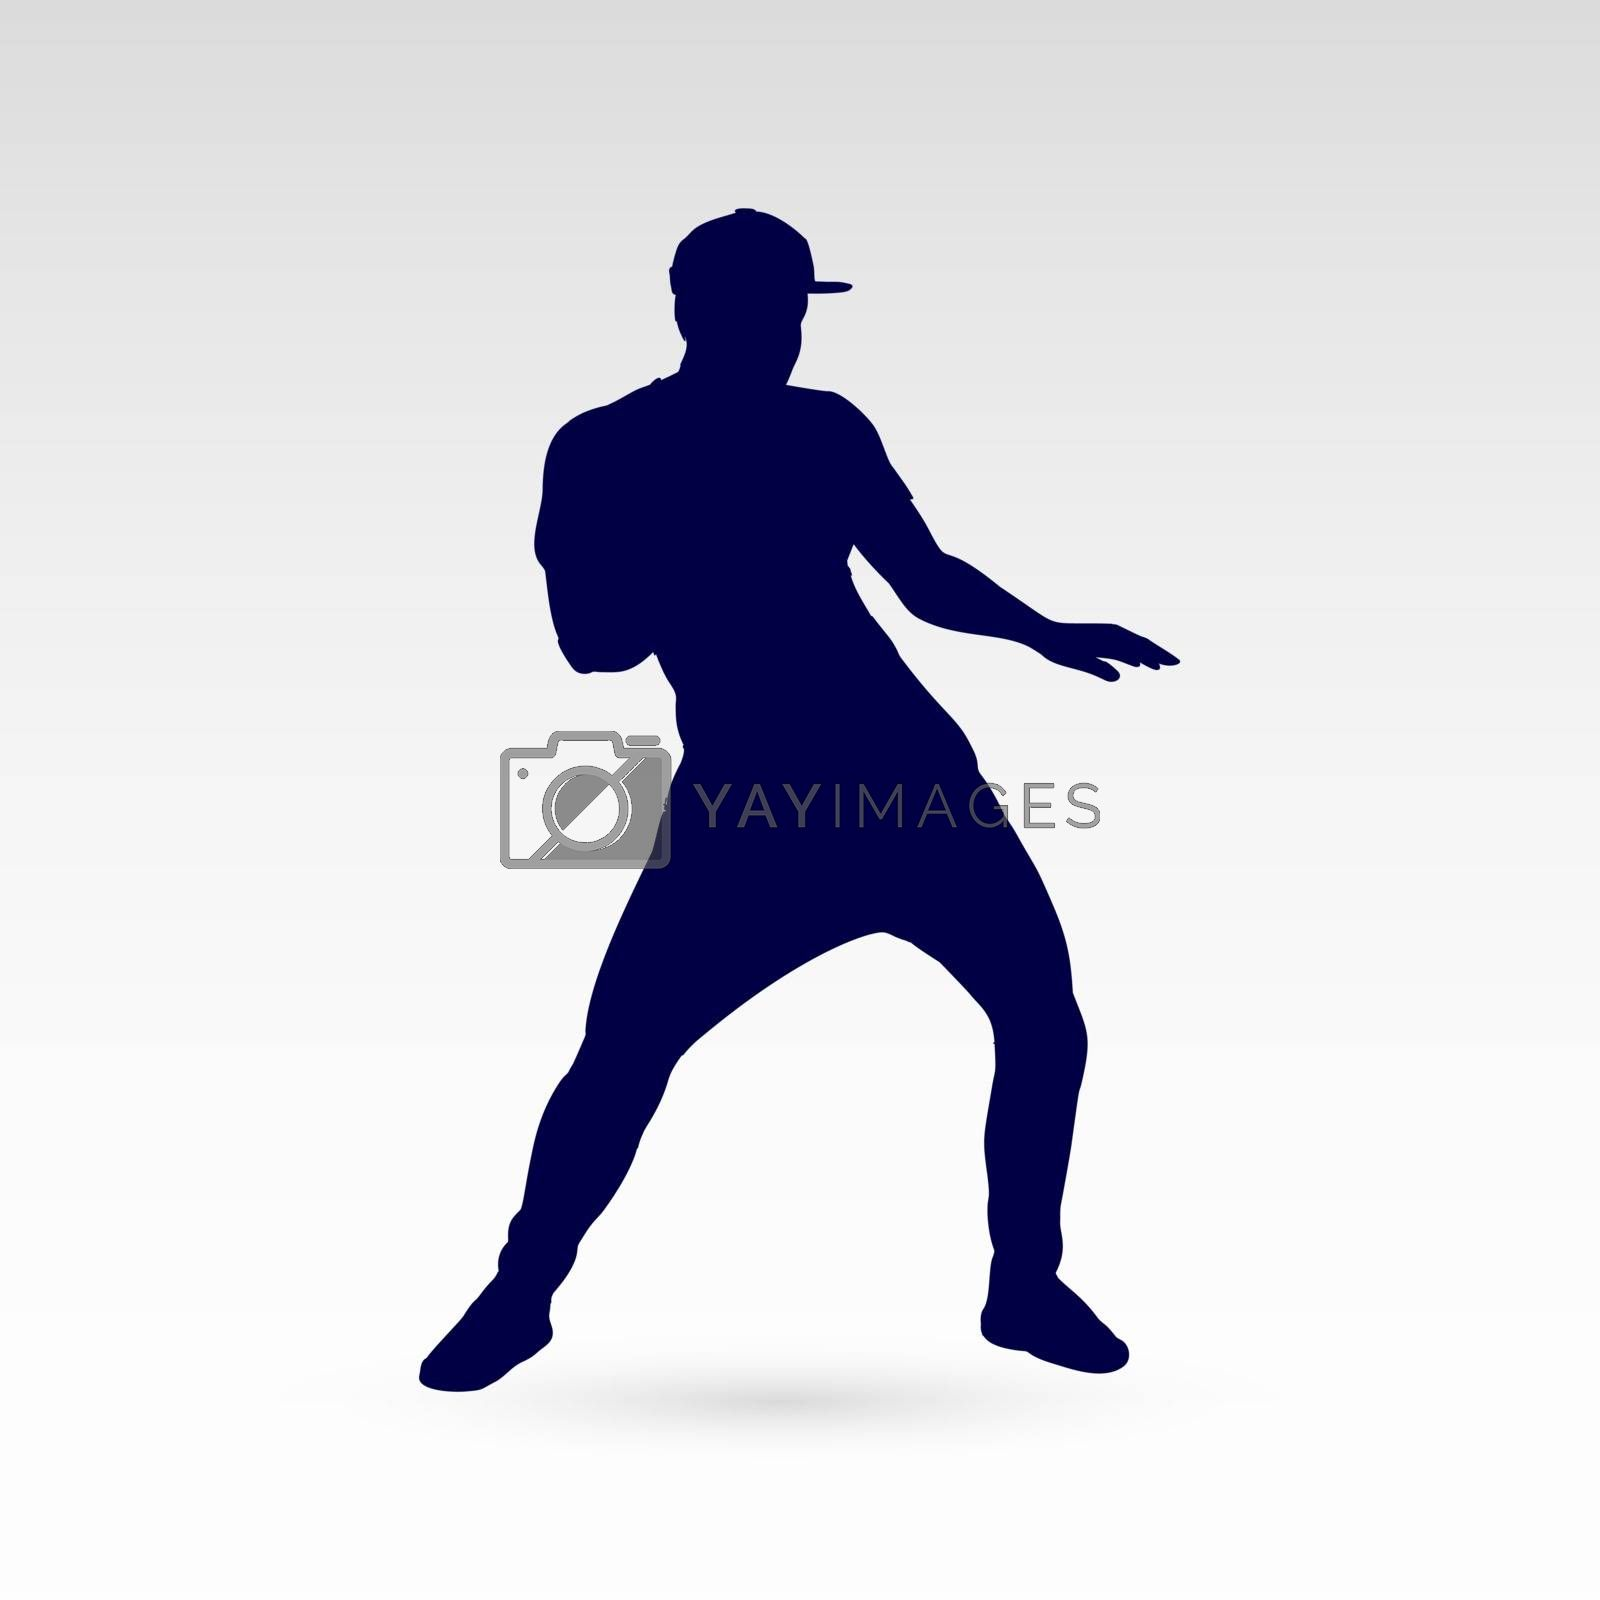 Modern Style Dancer Silhouette of a Man Dancer Hip Hop Choreography on Gray